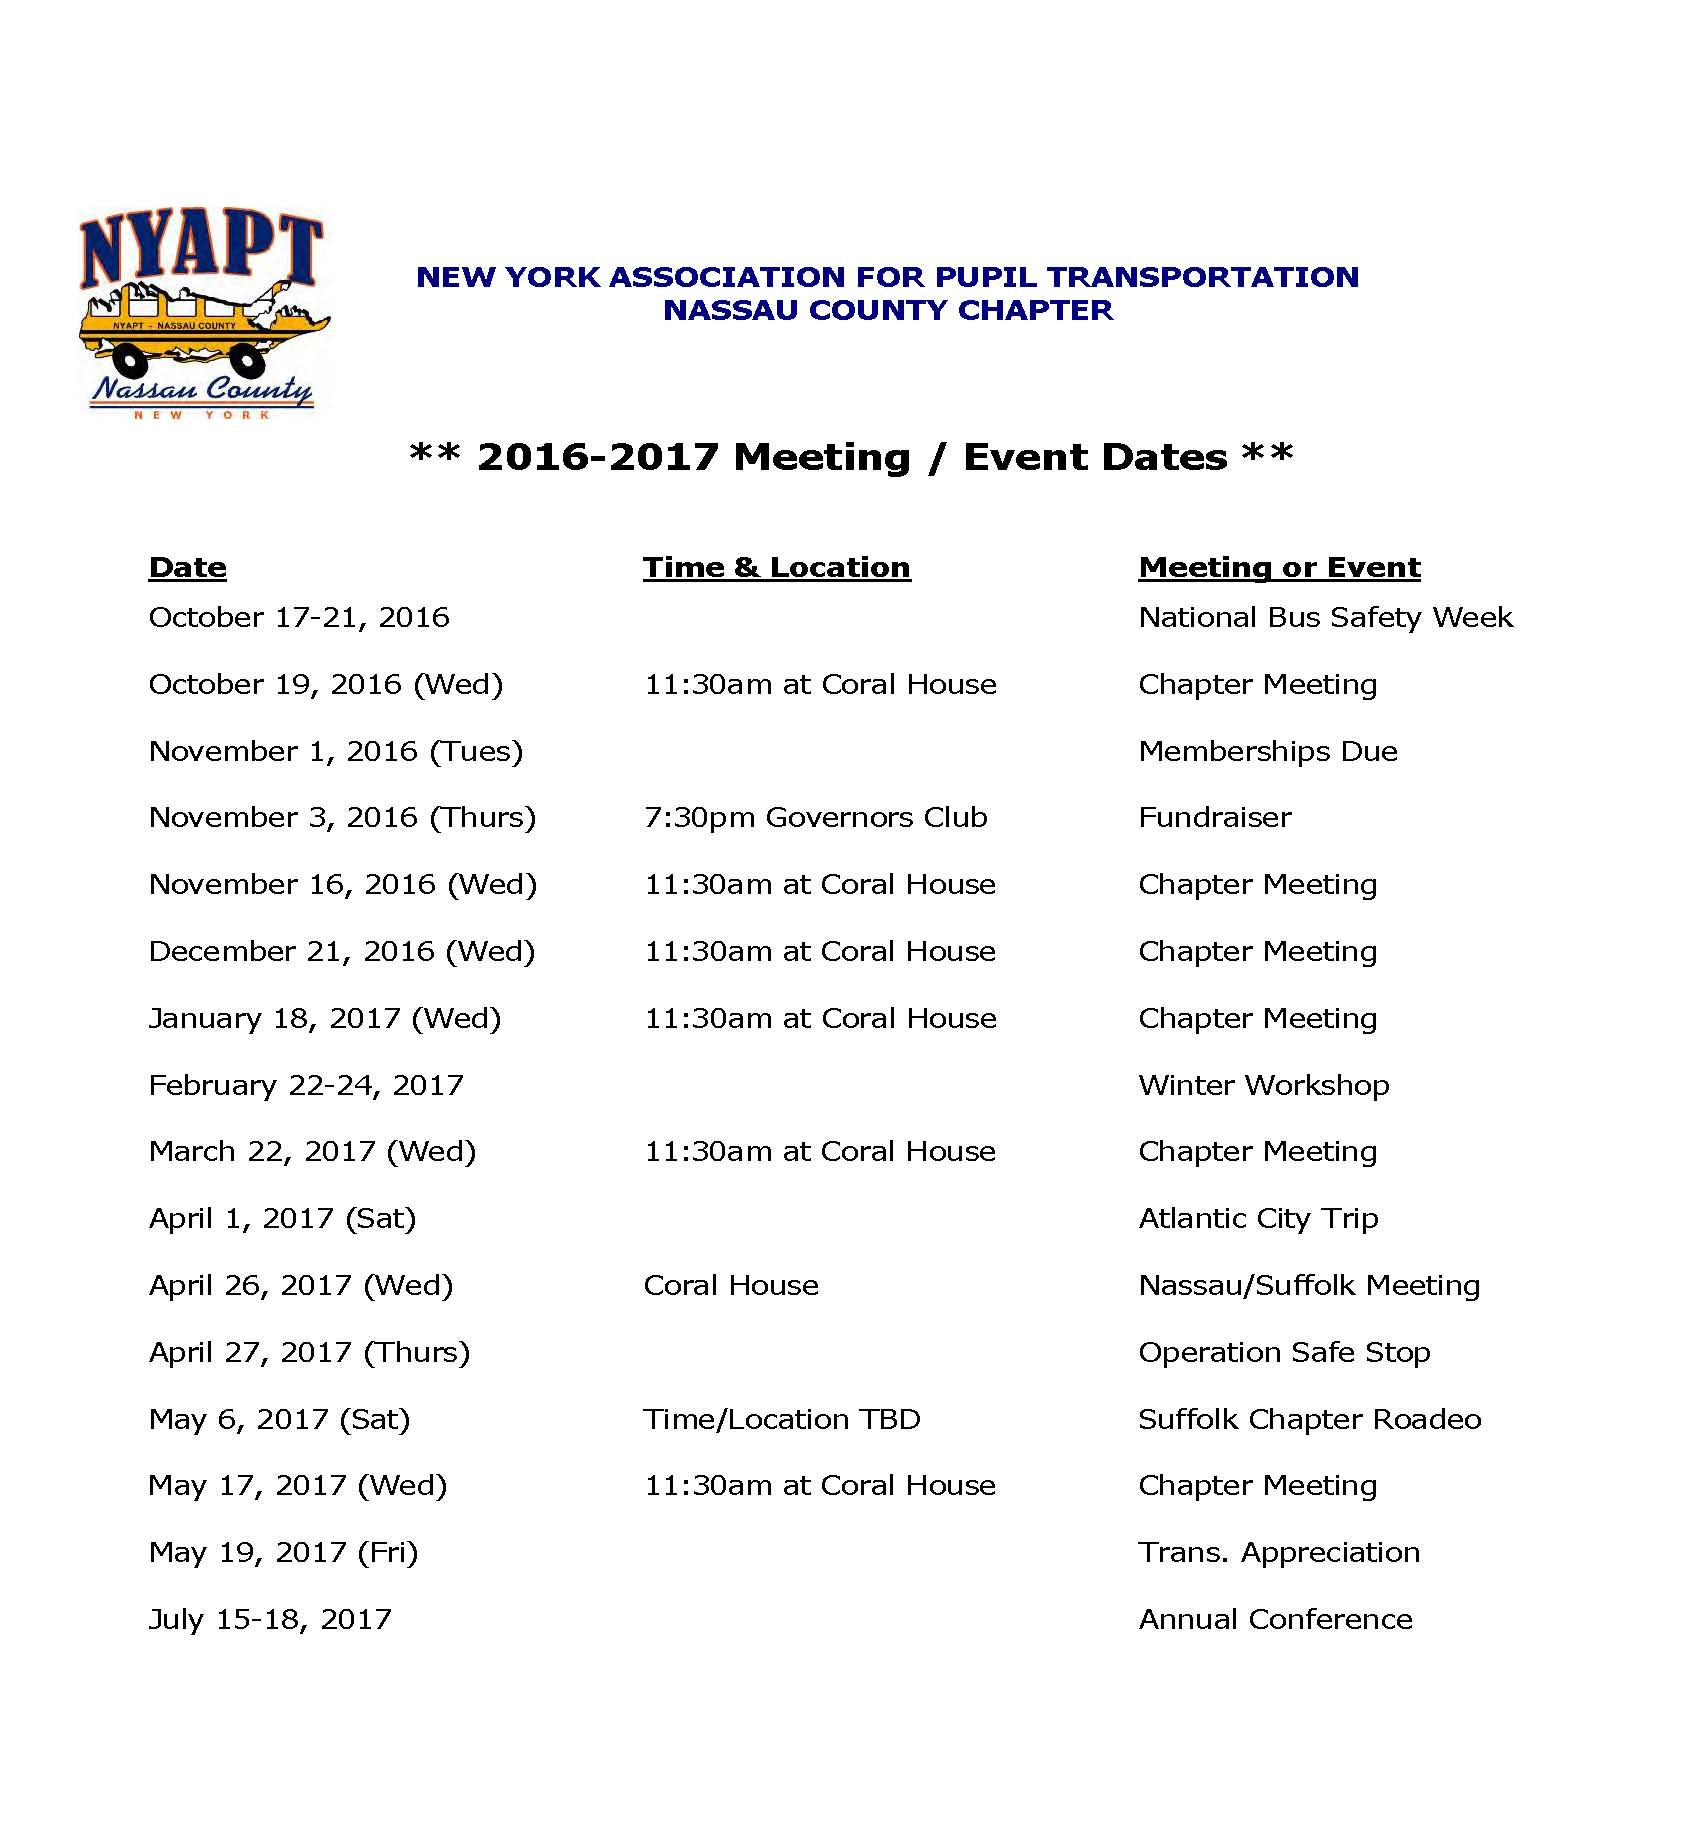 2016-2017 Meeting Dates Announced